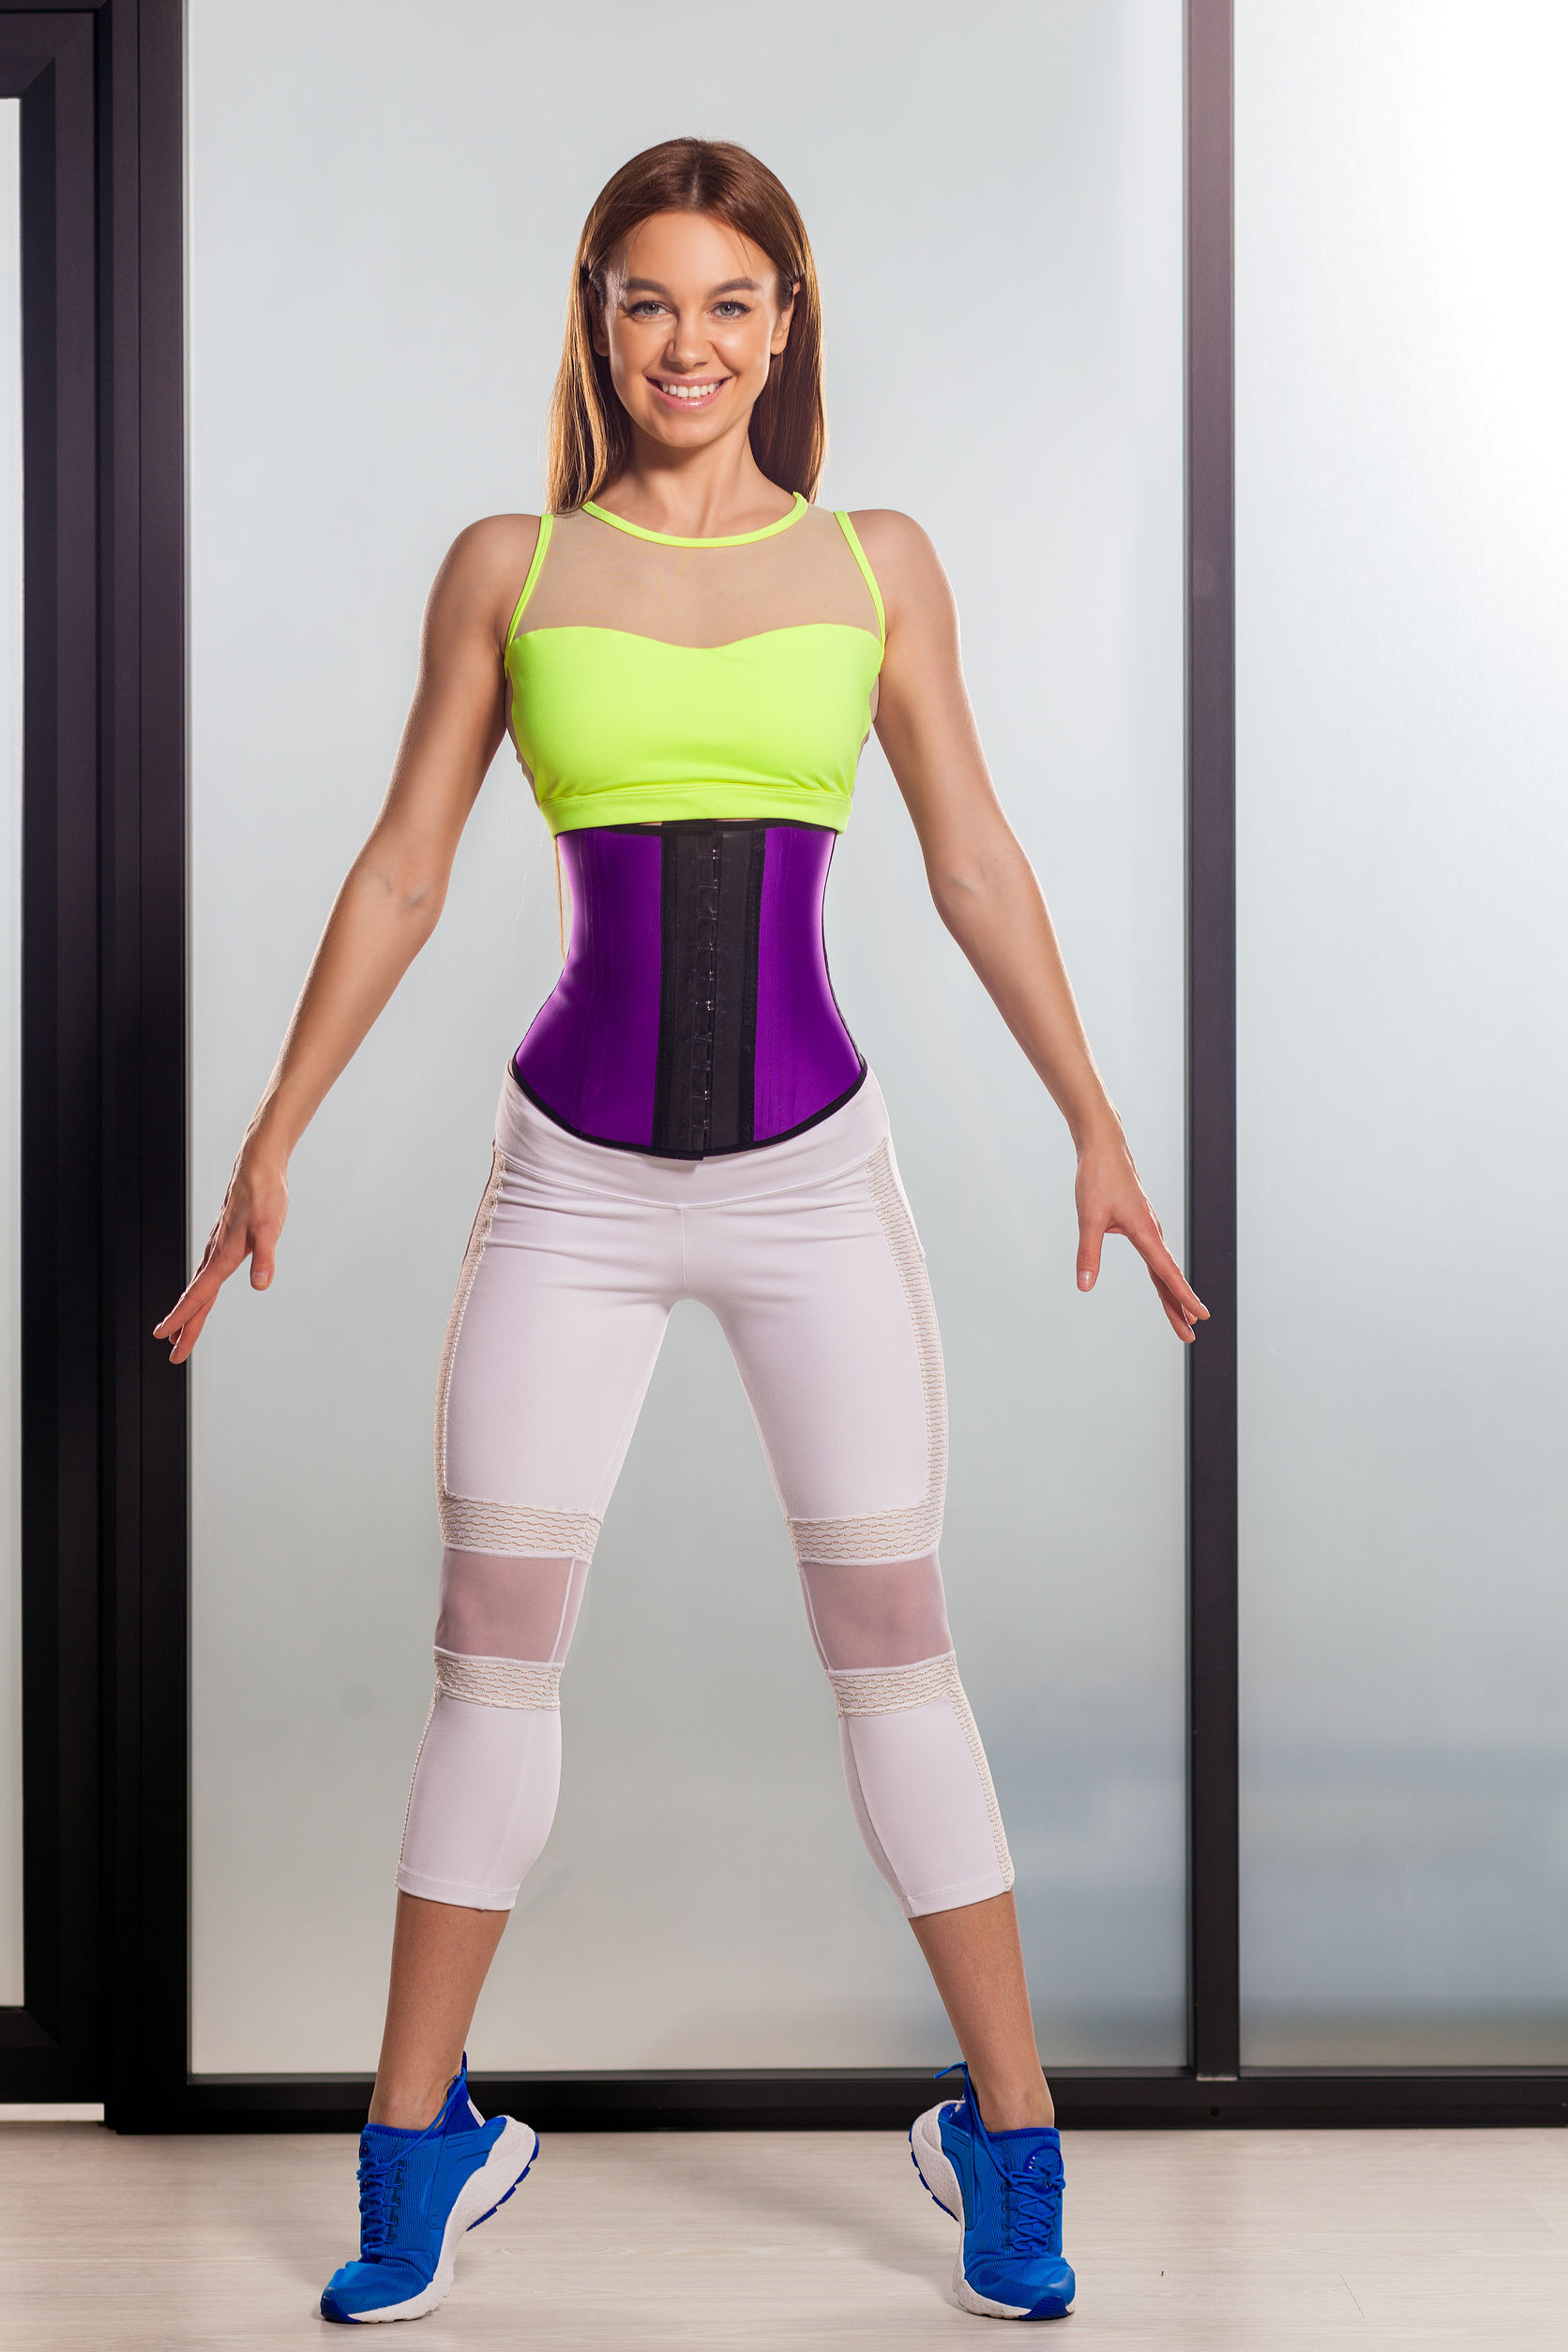 corset waist training body dysmorphia 2